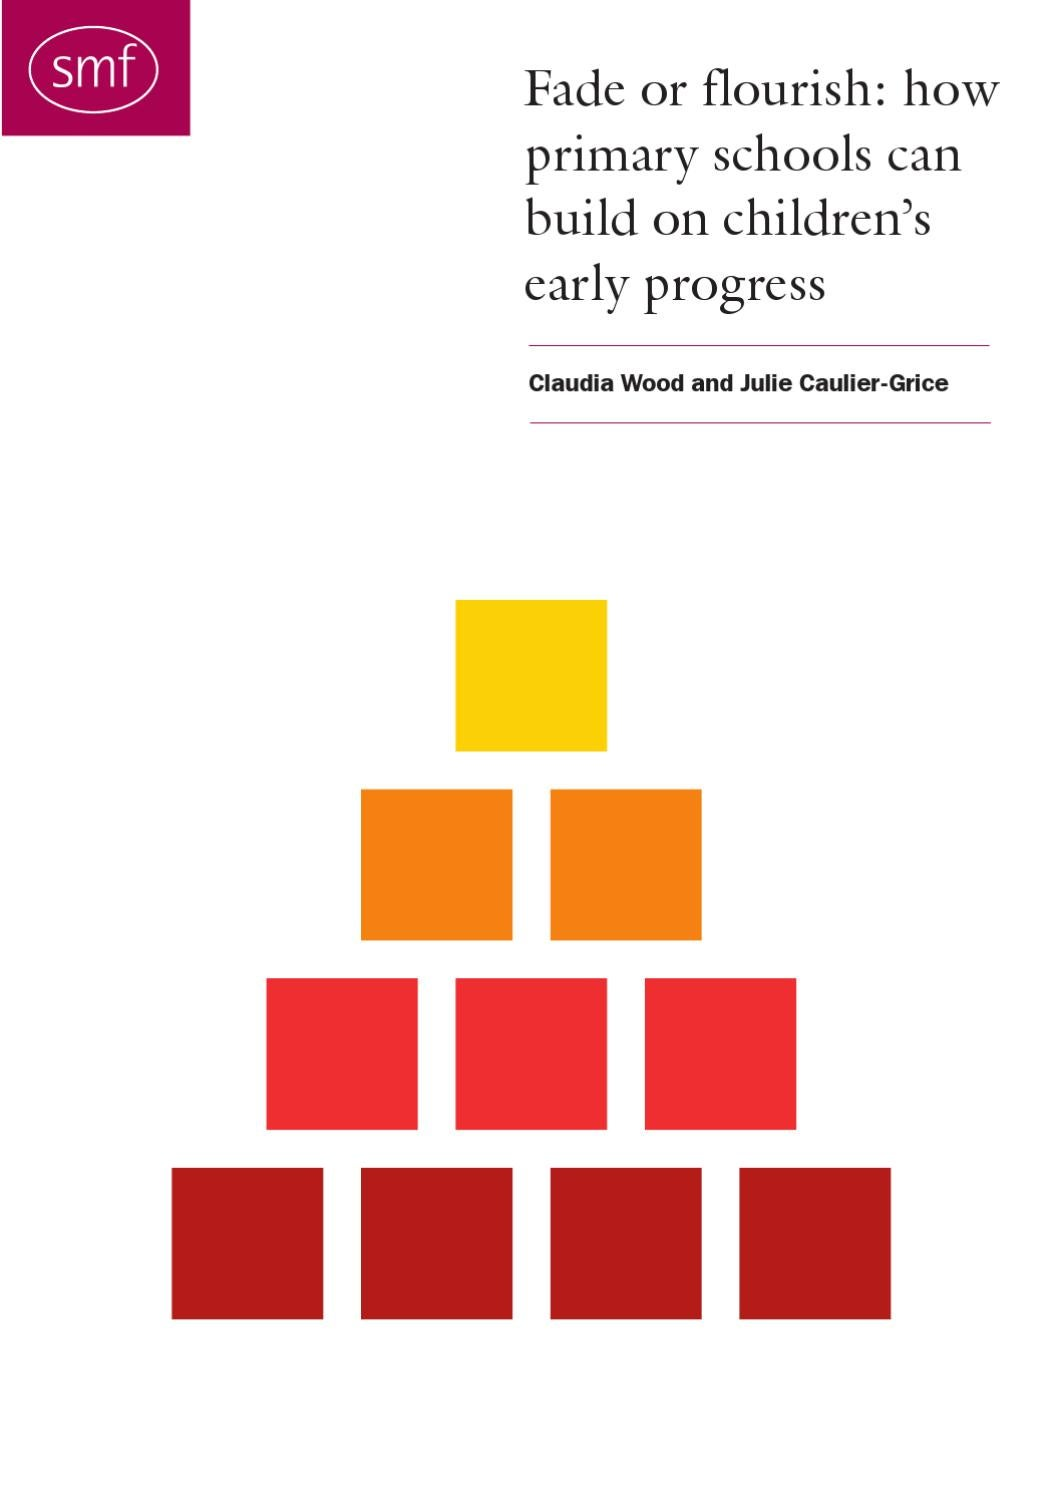 Fade or Flourish: How primary schools can build on children's early  progress by Esmee Fairbairn Foundation - issuu